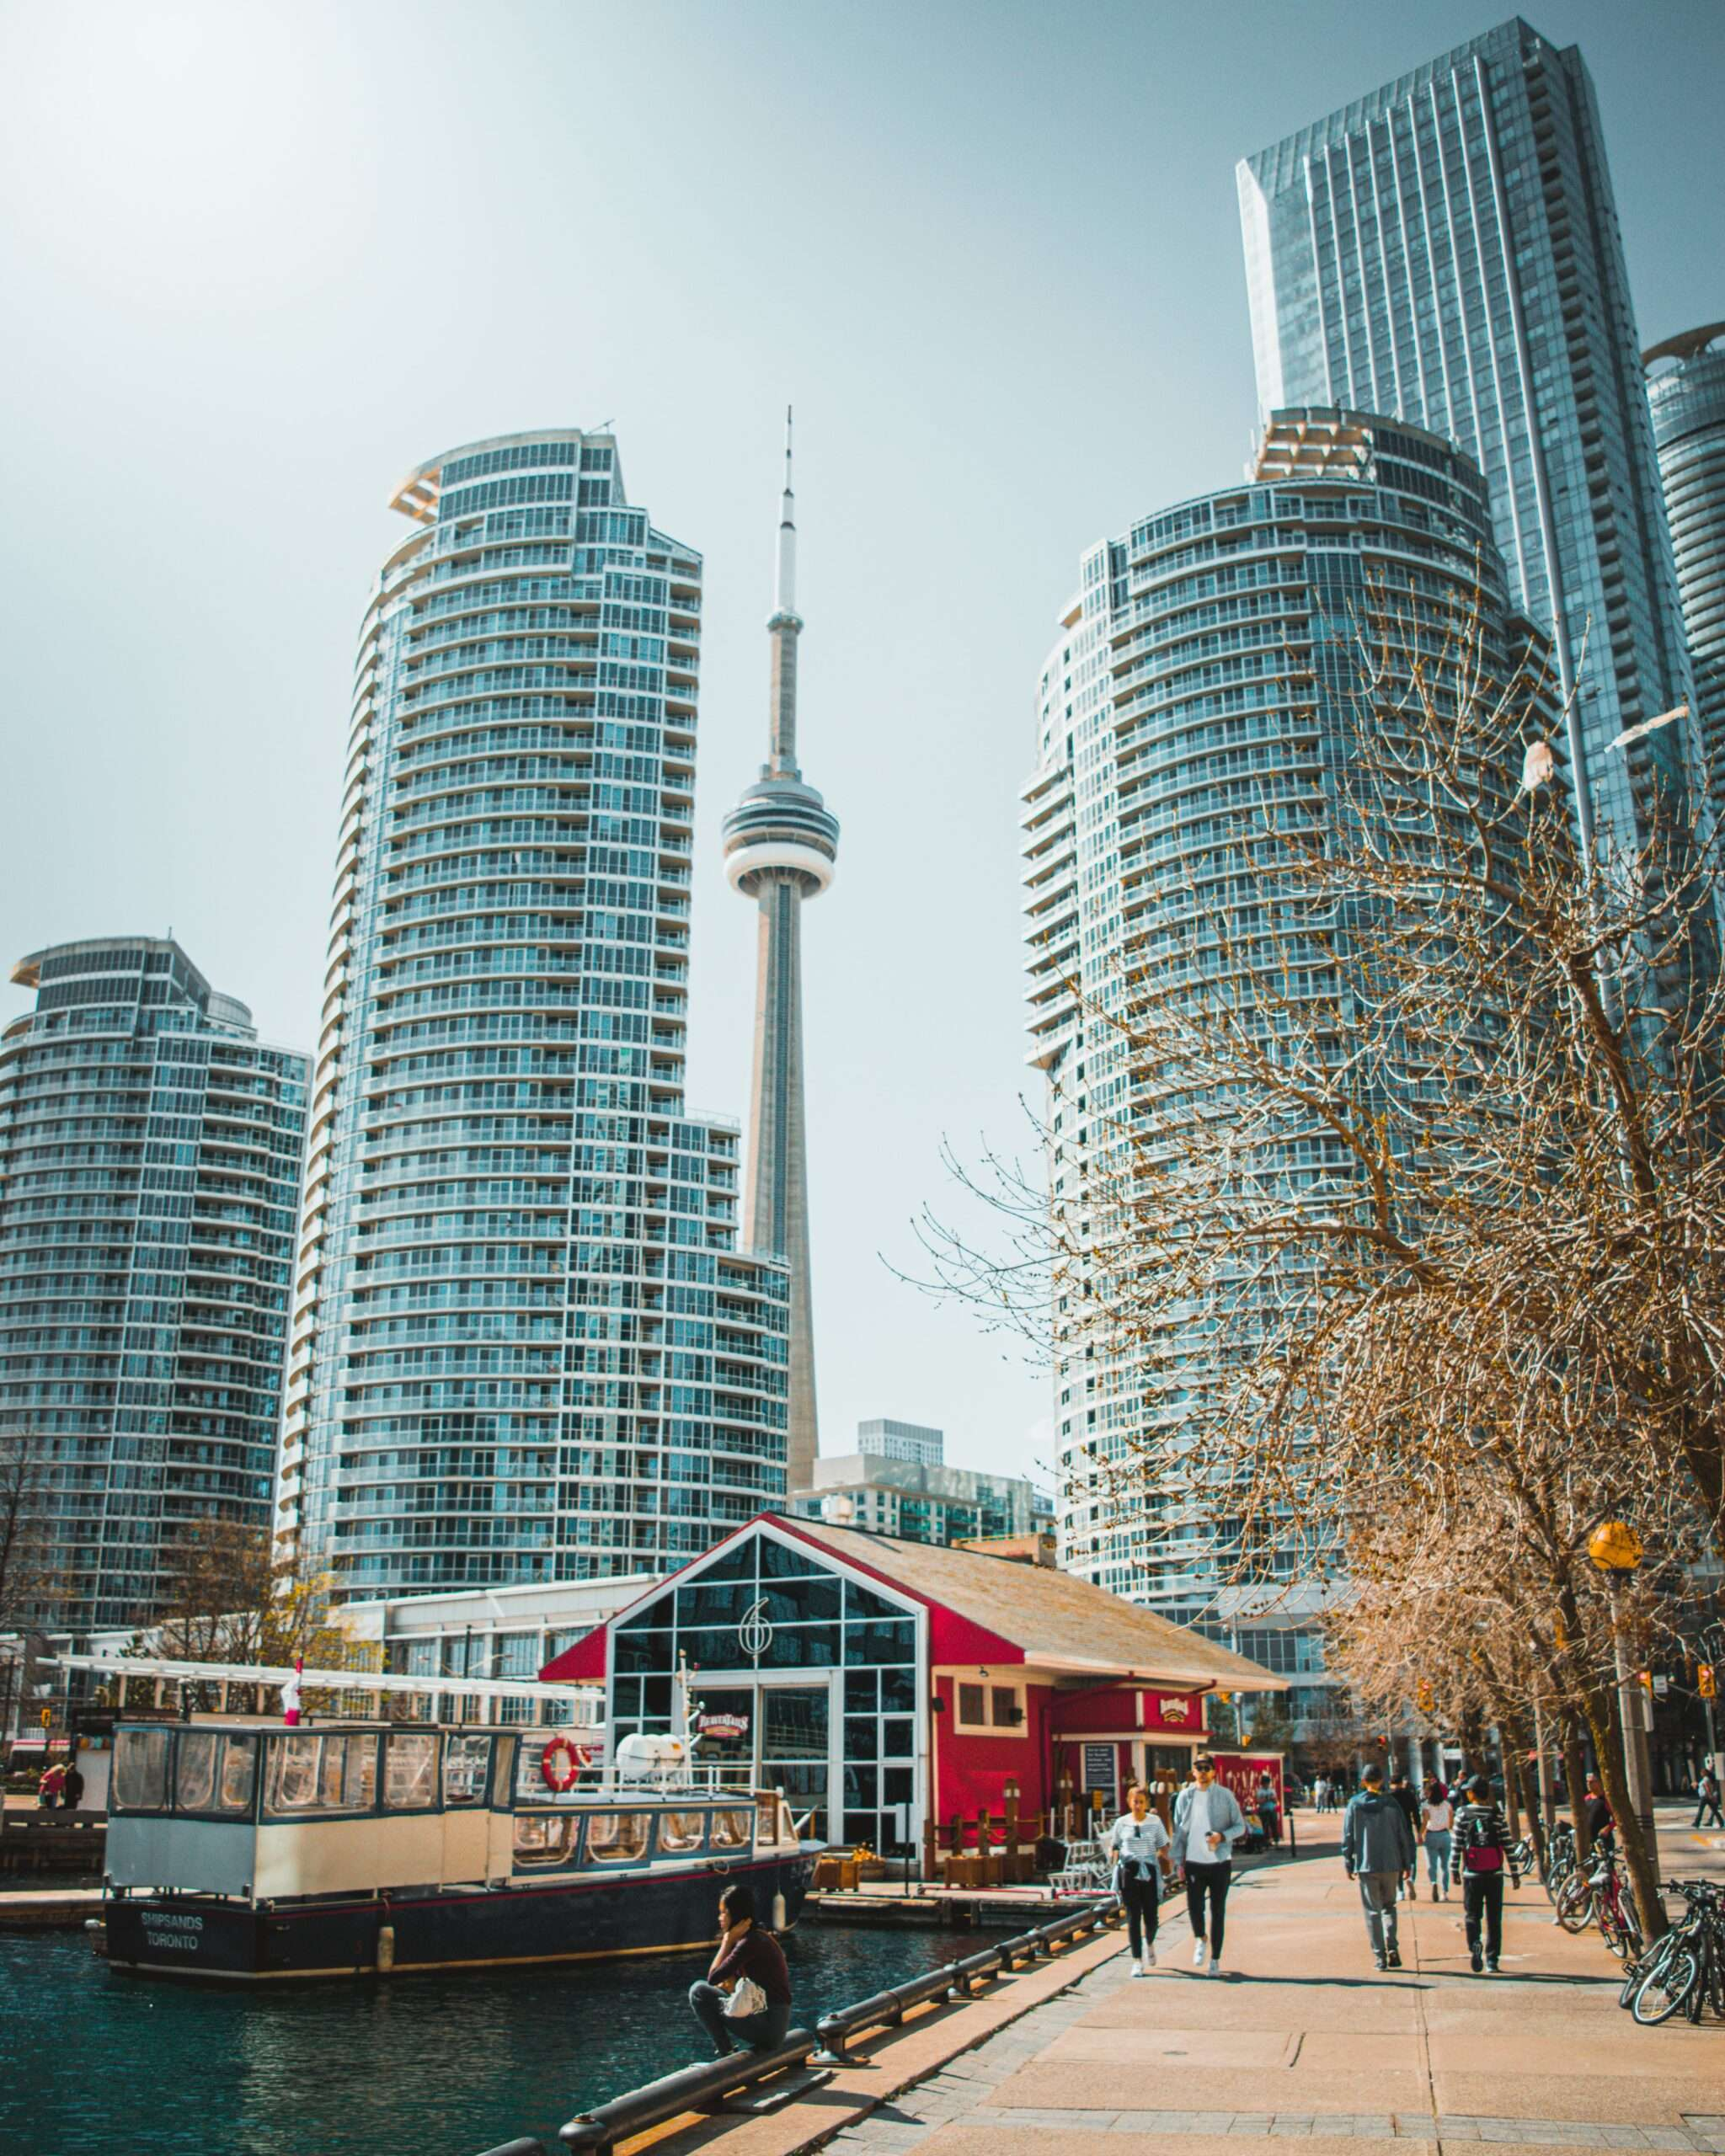 People walk along the Harbourfront, Toronto Canada